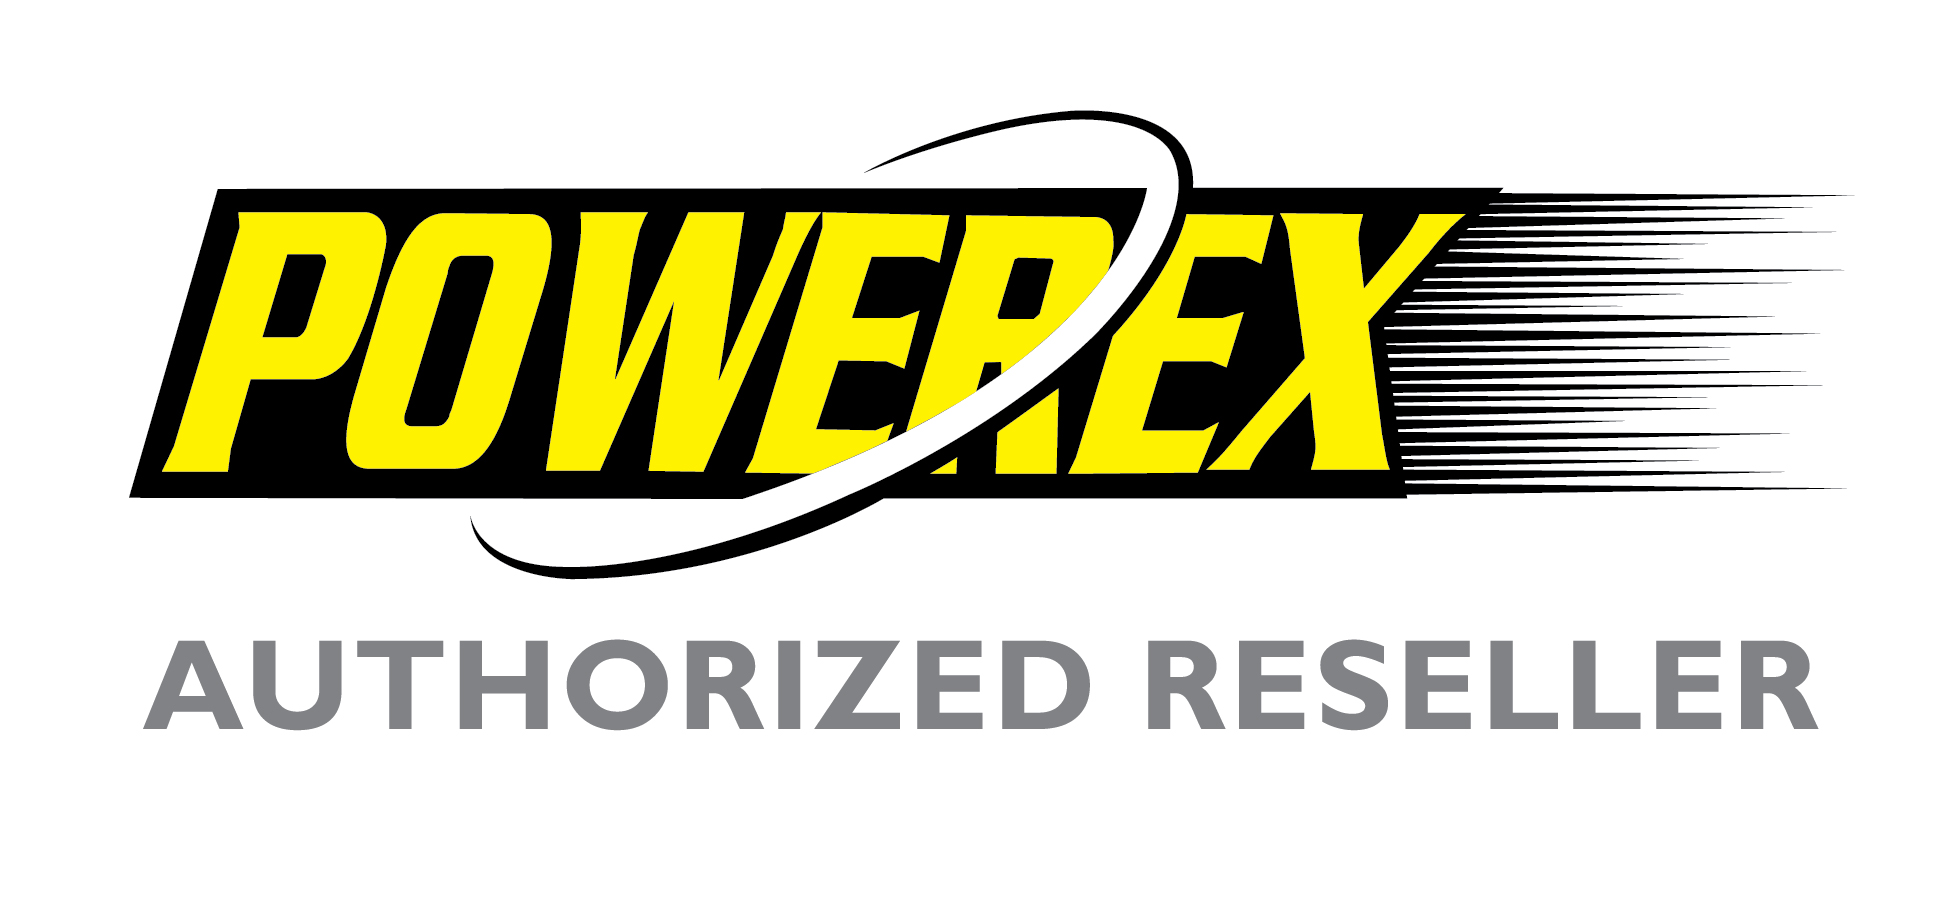 powerex-logo-authorized-reseller.jpg